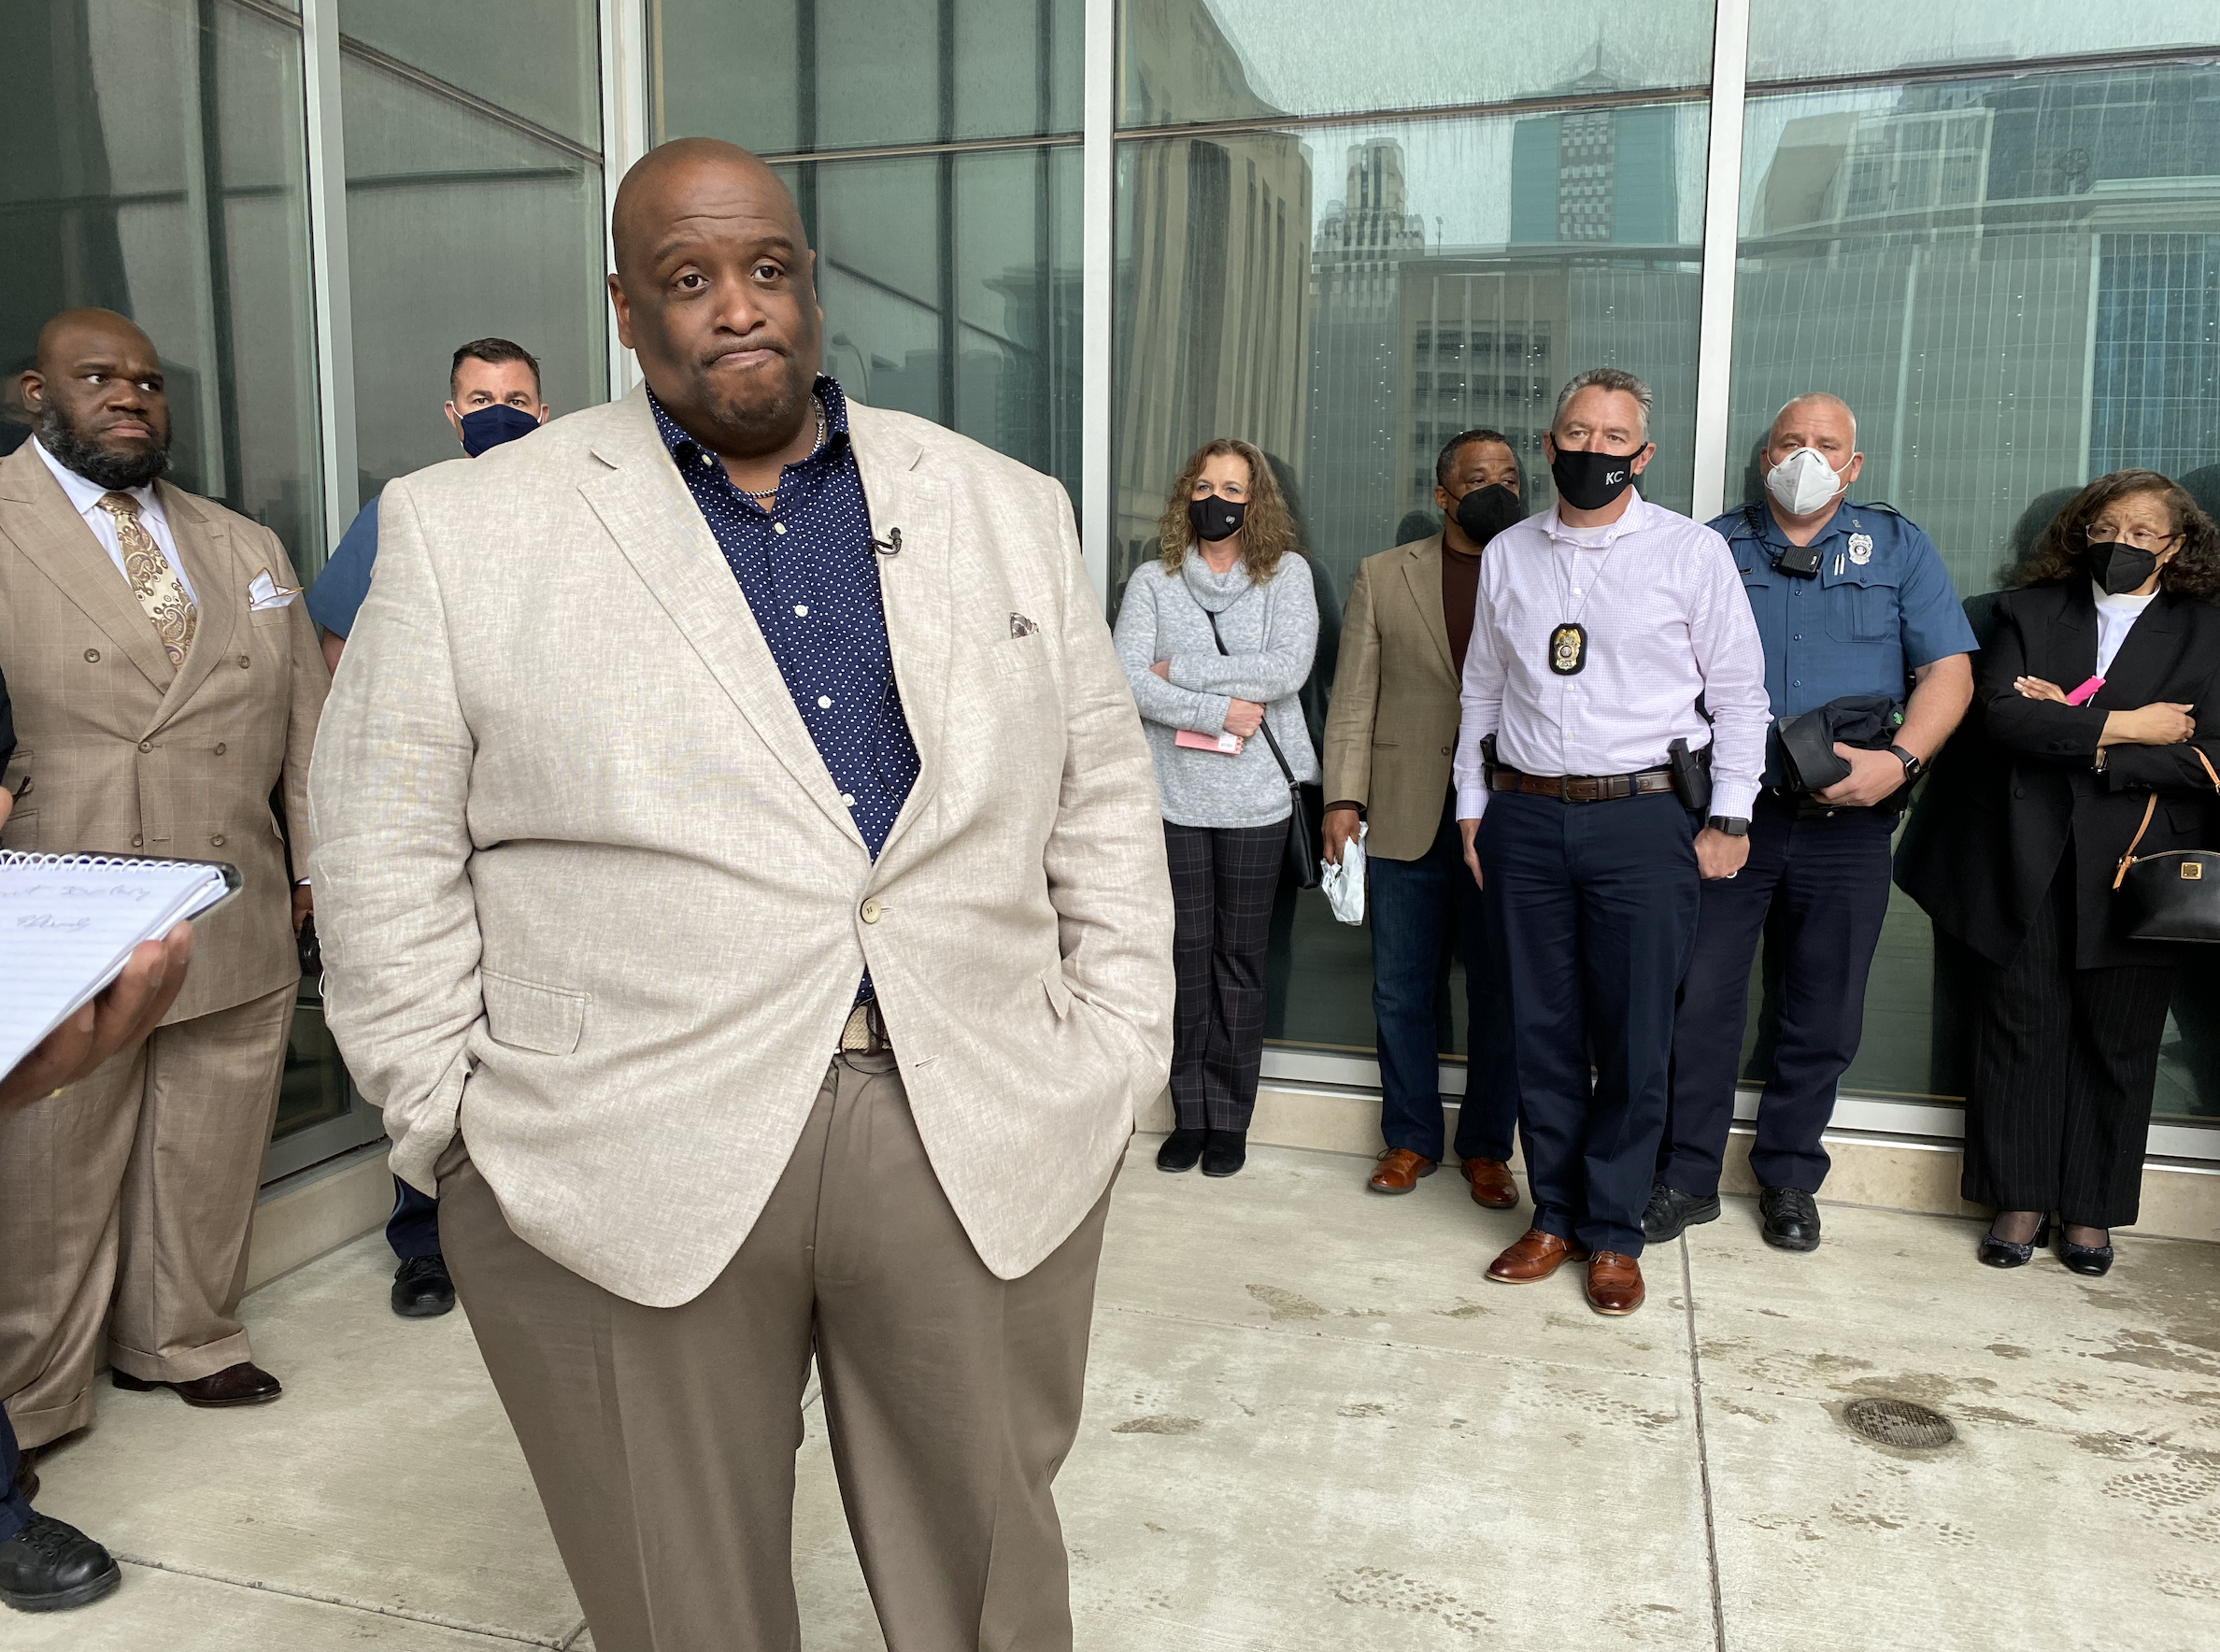 KCPD, faith leaders discuss potential protests amid the Derek Chauvin trial